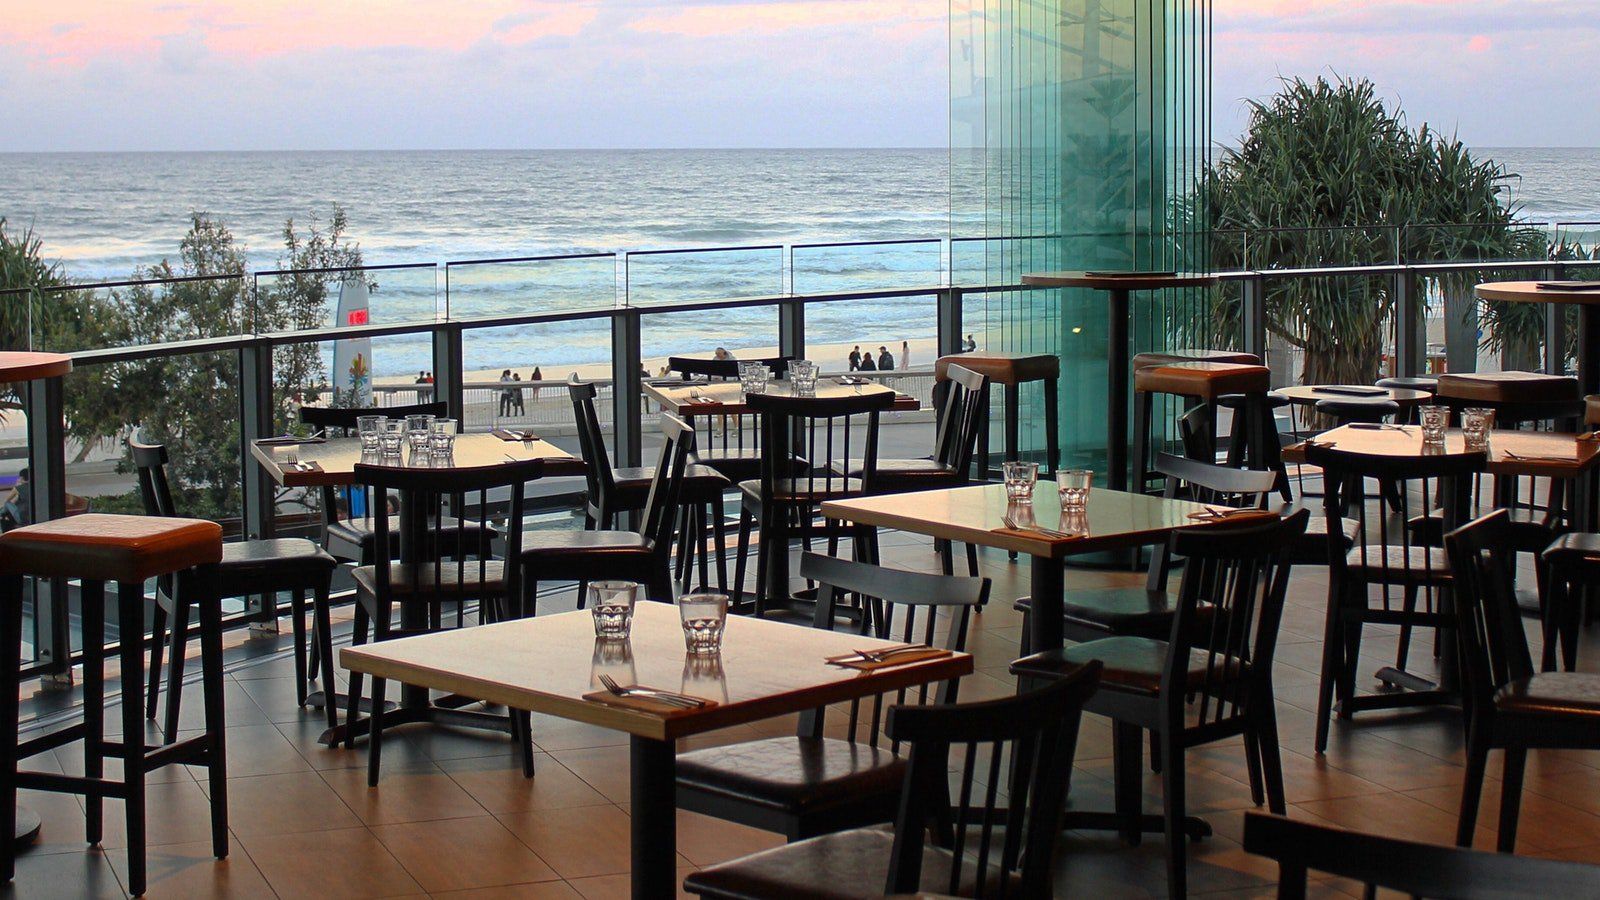 Overlooking the iconic Surfers paradise Beach